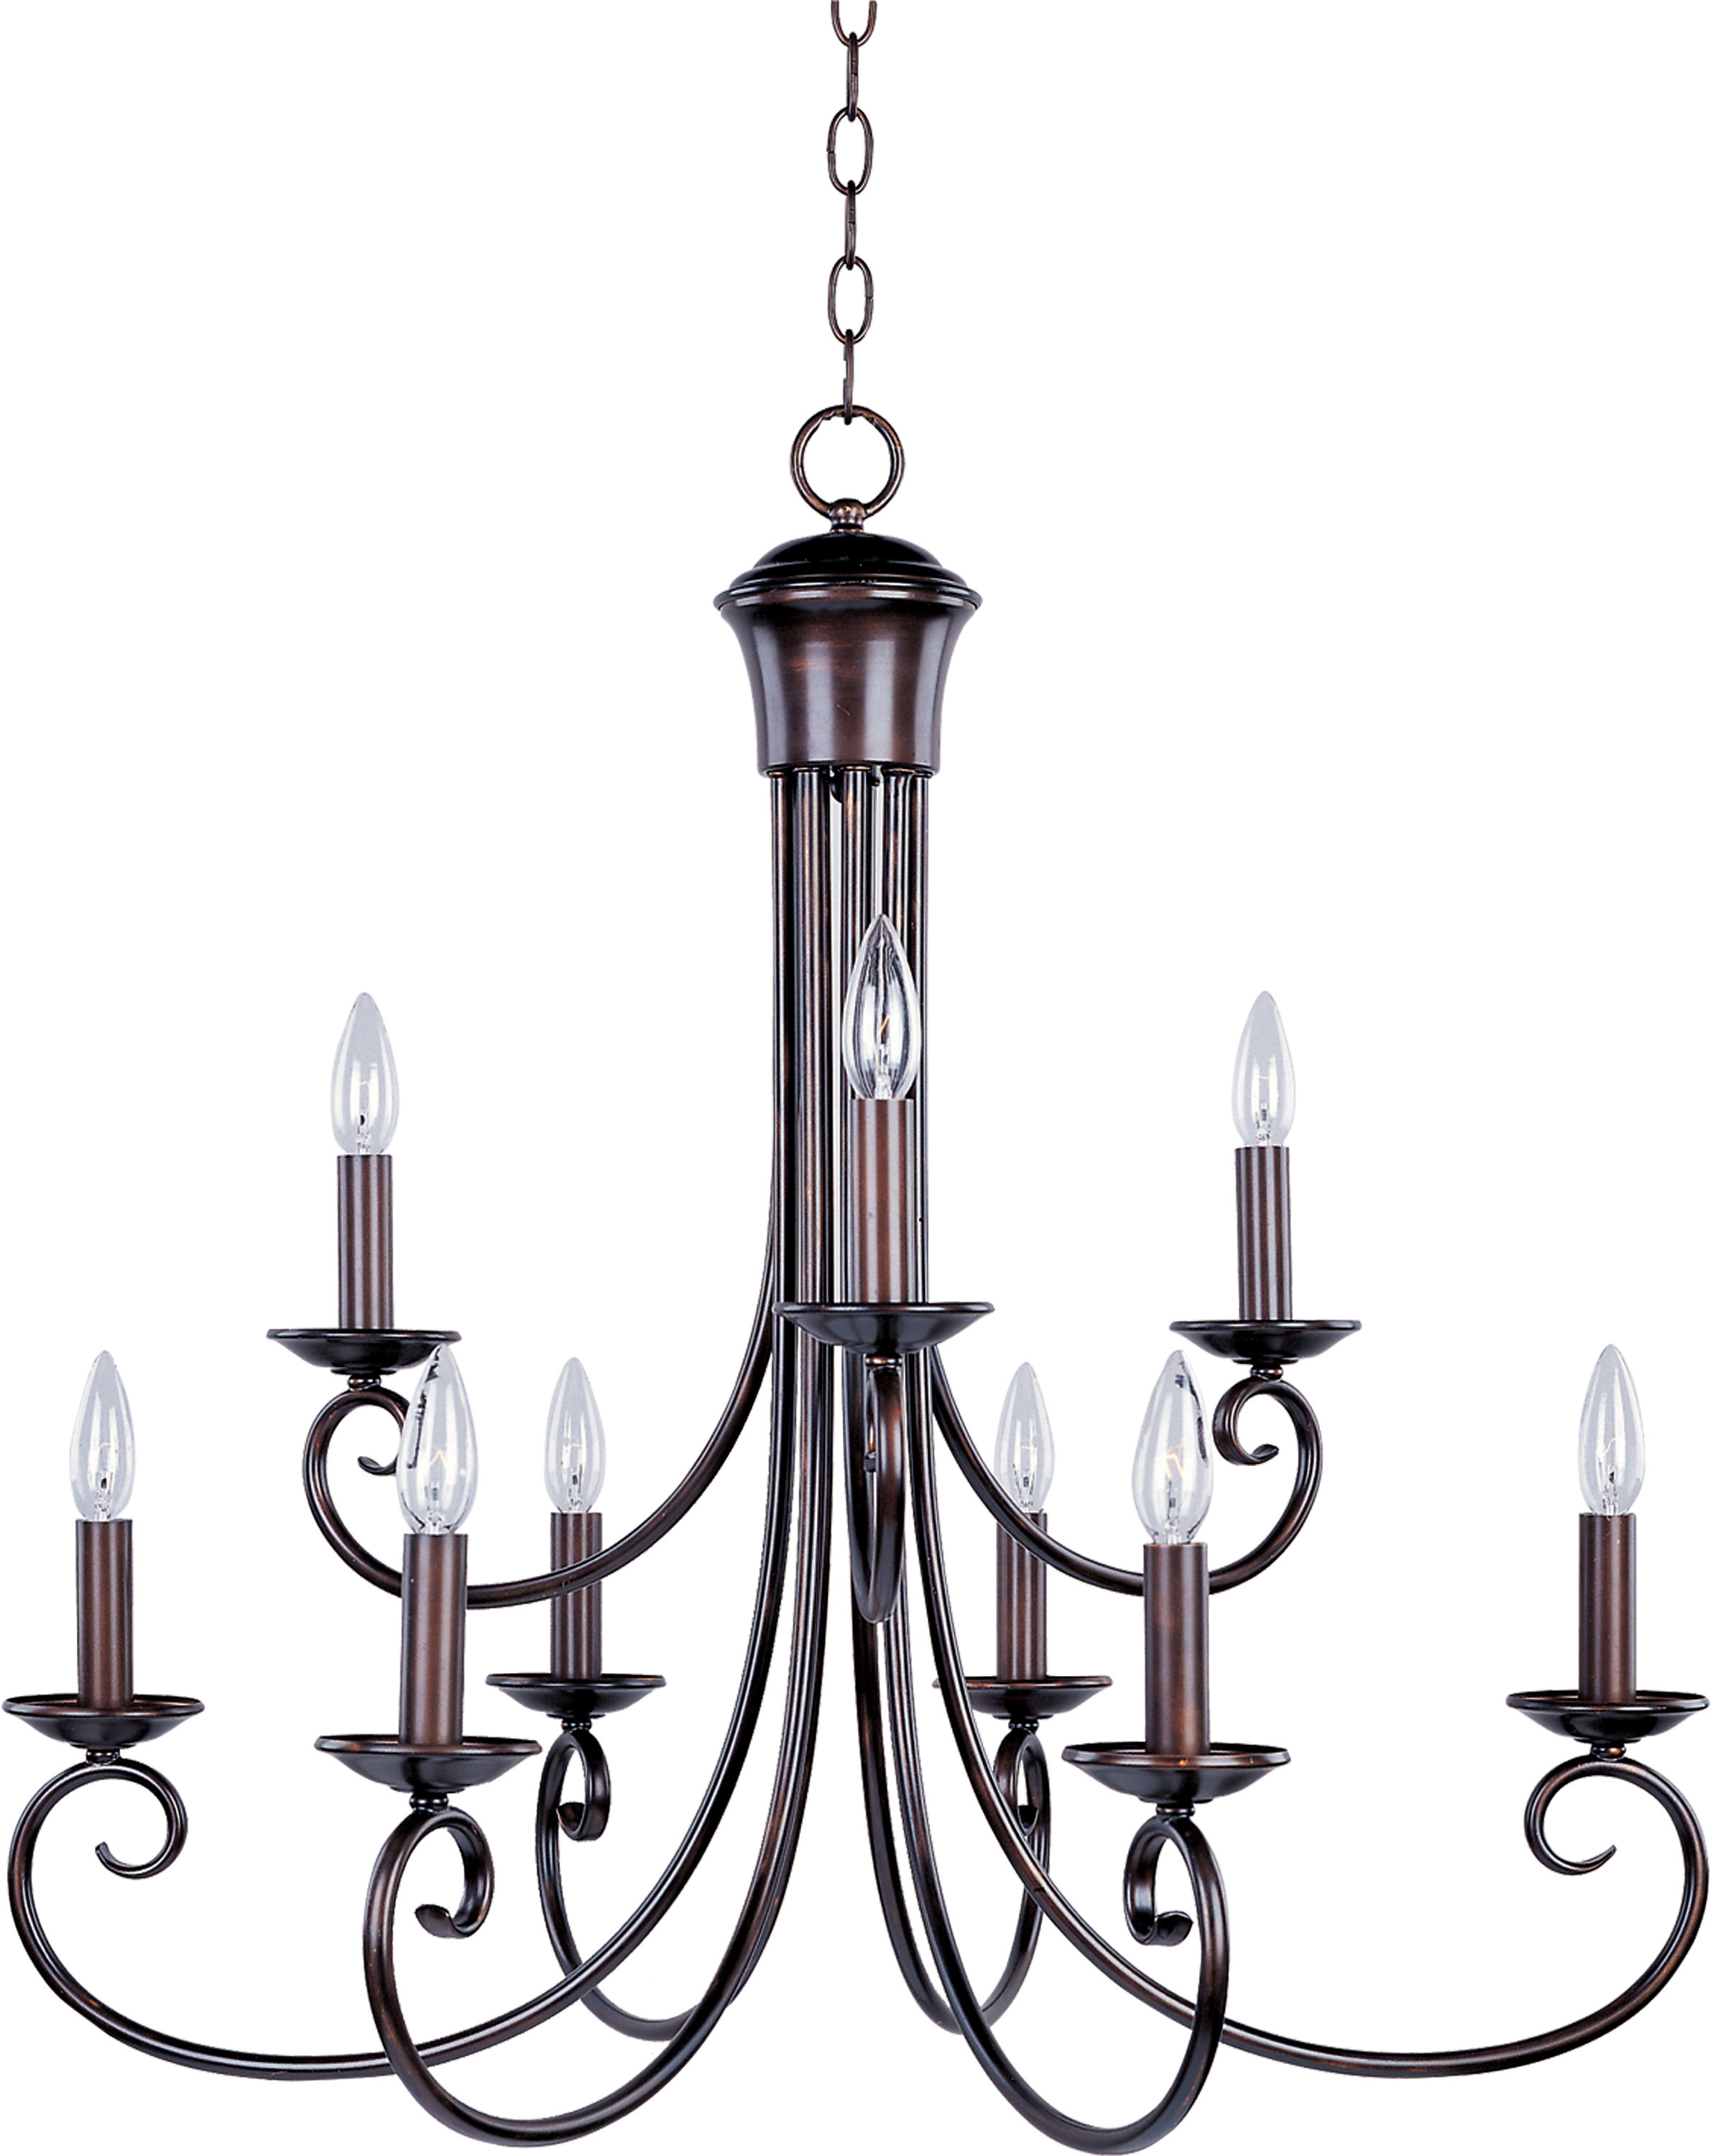 Charlton Home Kenedy 9-Light Candle Style Chandelier pertaining to Camilla 9-Light Candle Style Chandeliers (Image 9 of 30)